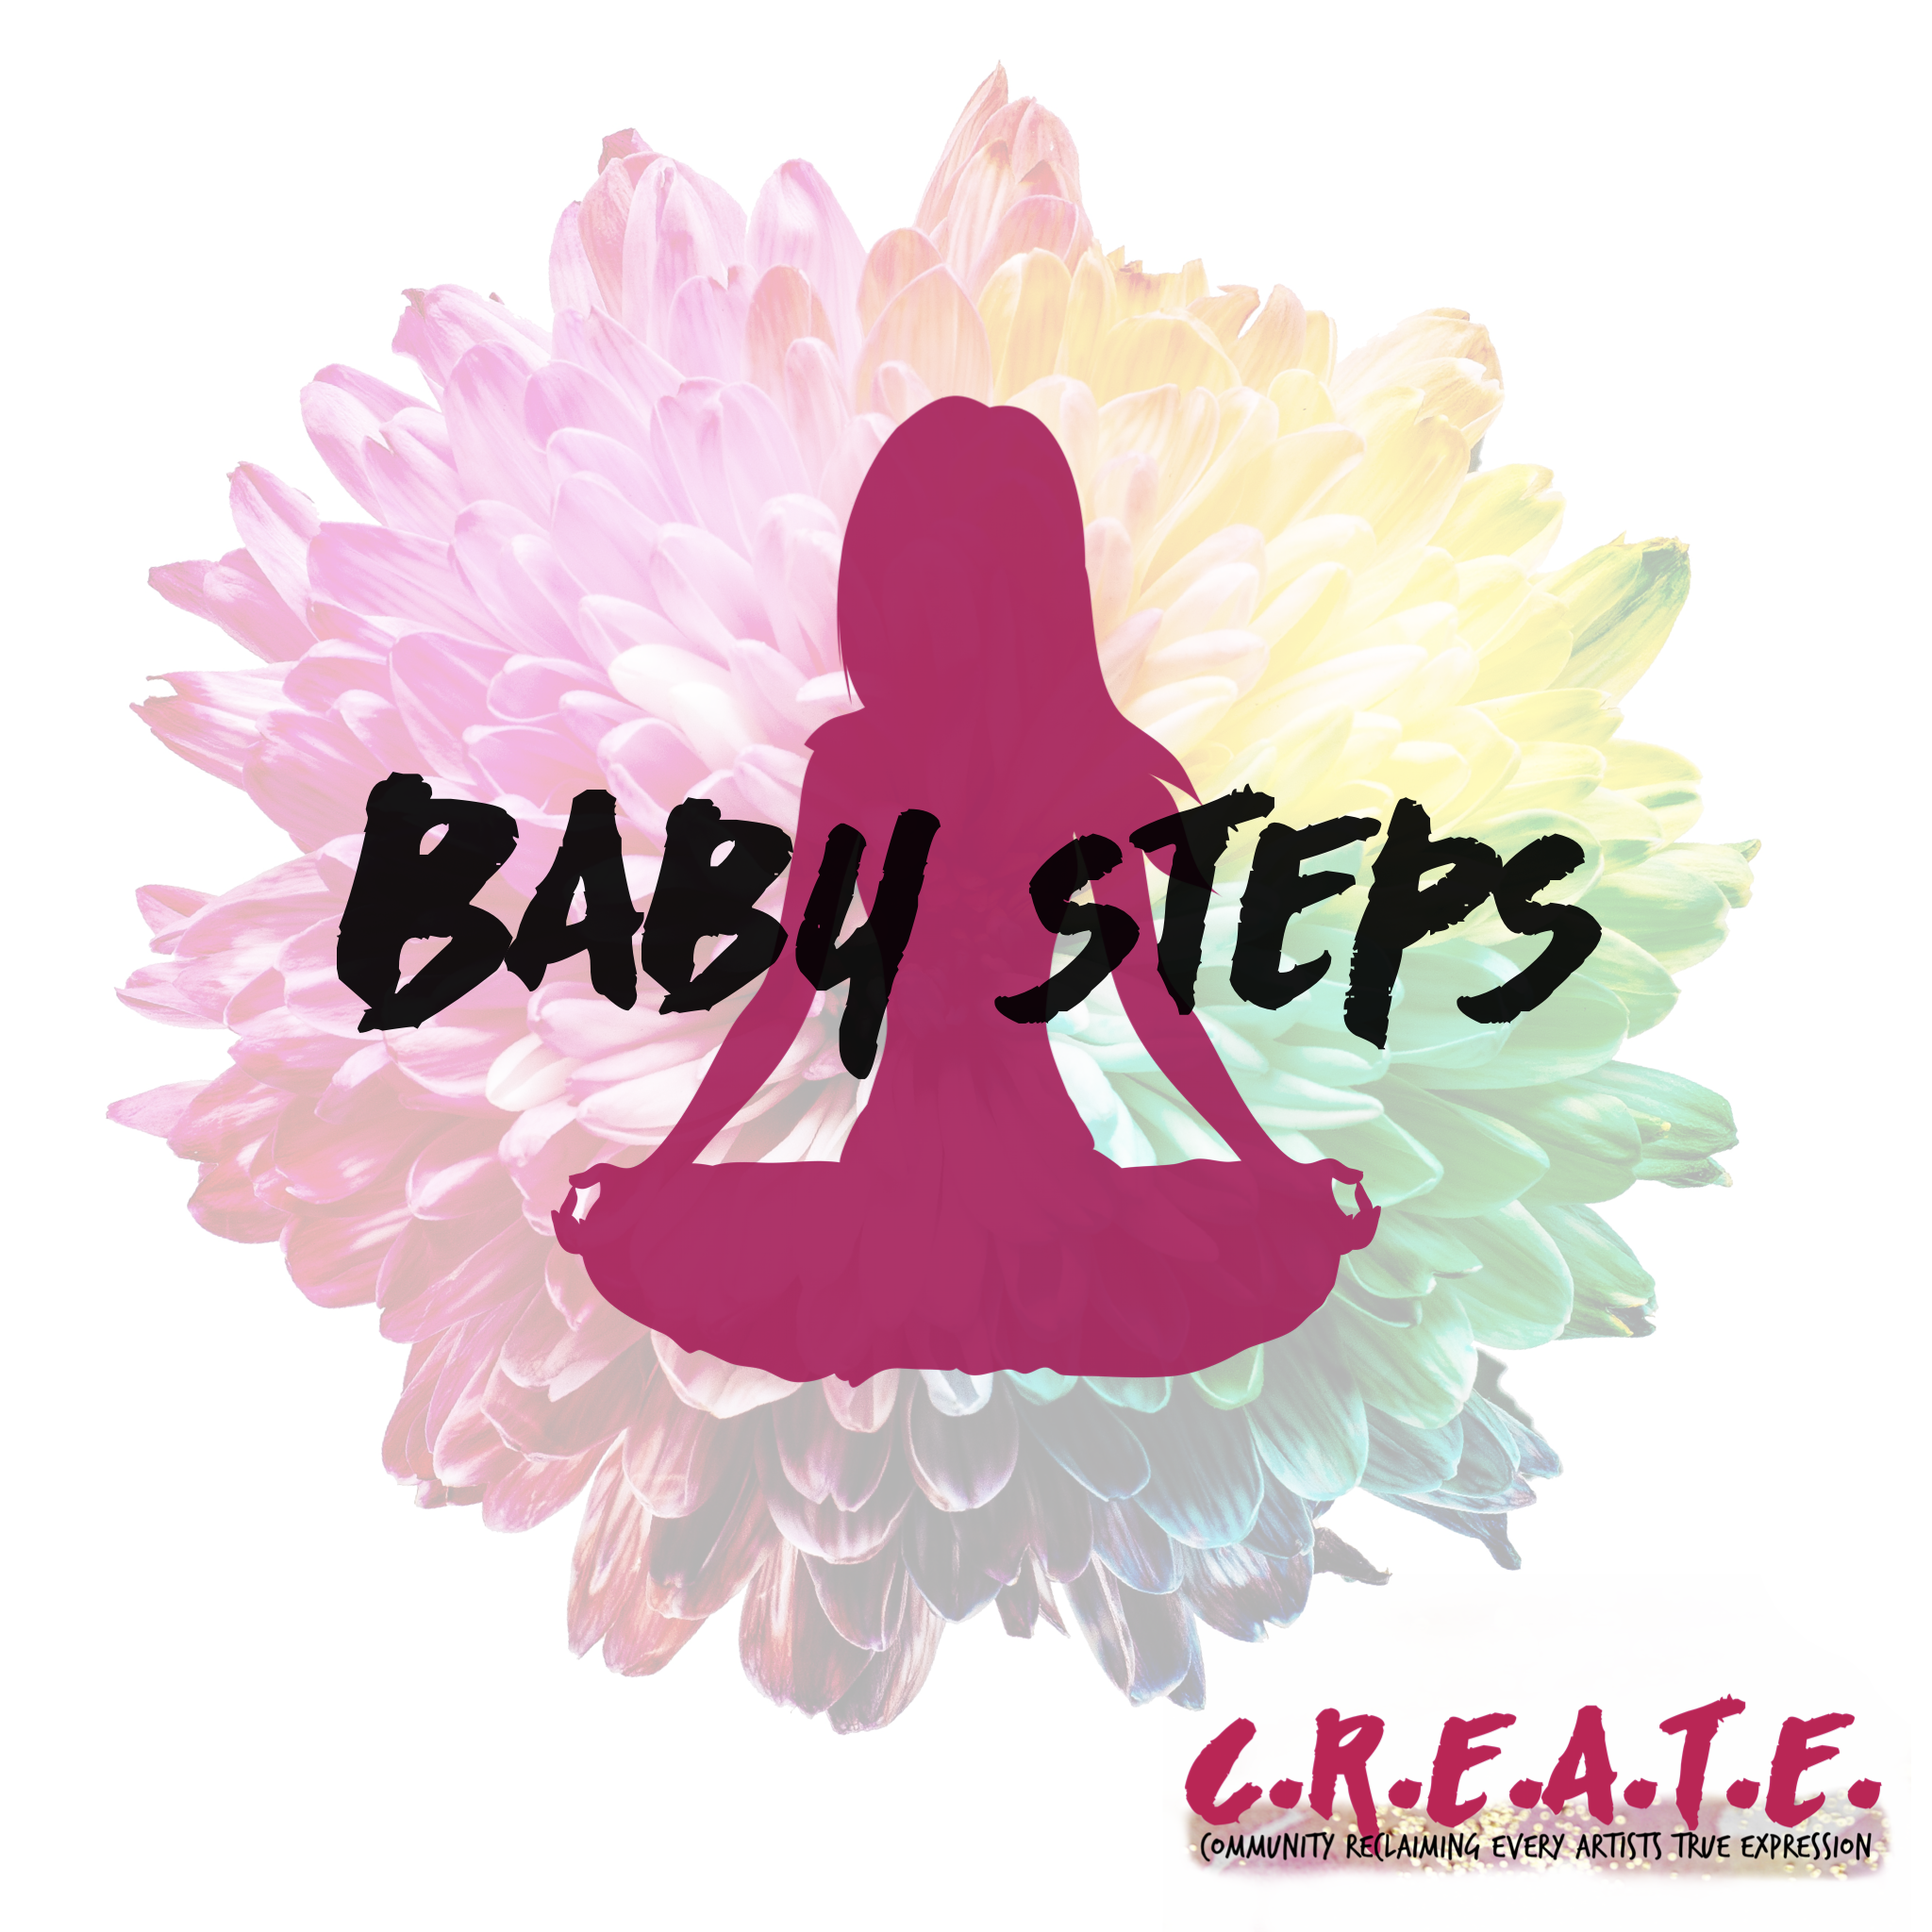 Baby Steps - $1.99 - Click Image To Purchase!